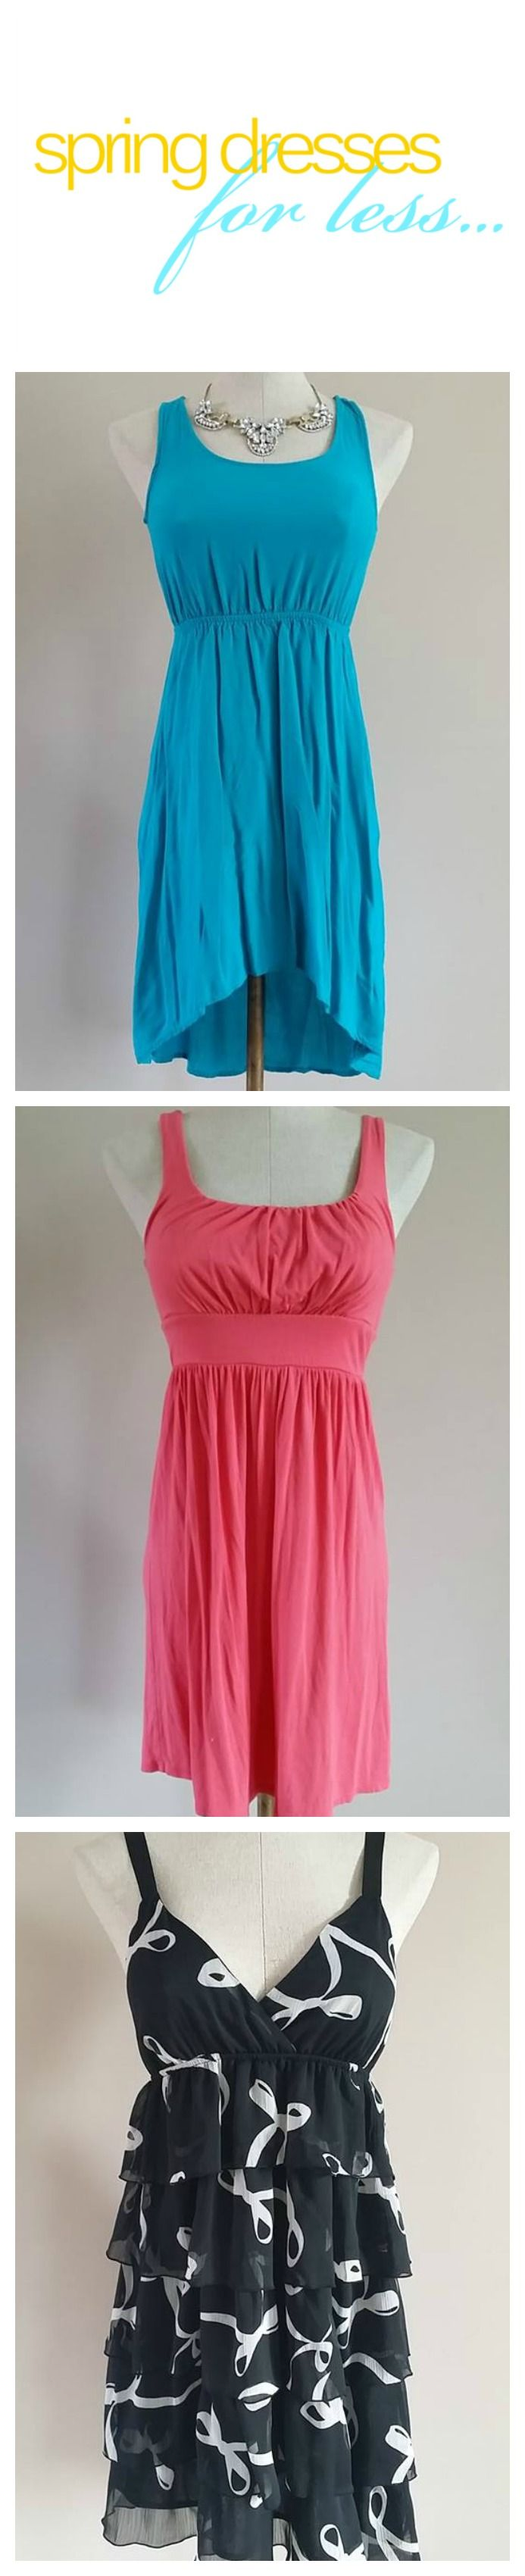 Get beautiful Spring dresses for less at www.newdawnboutique.com! Isaac Mizrahi - Loft - Forever 21 - Old Navy Maxi Dresses - Hi-Low Dresses - Striped Dresses